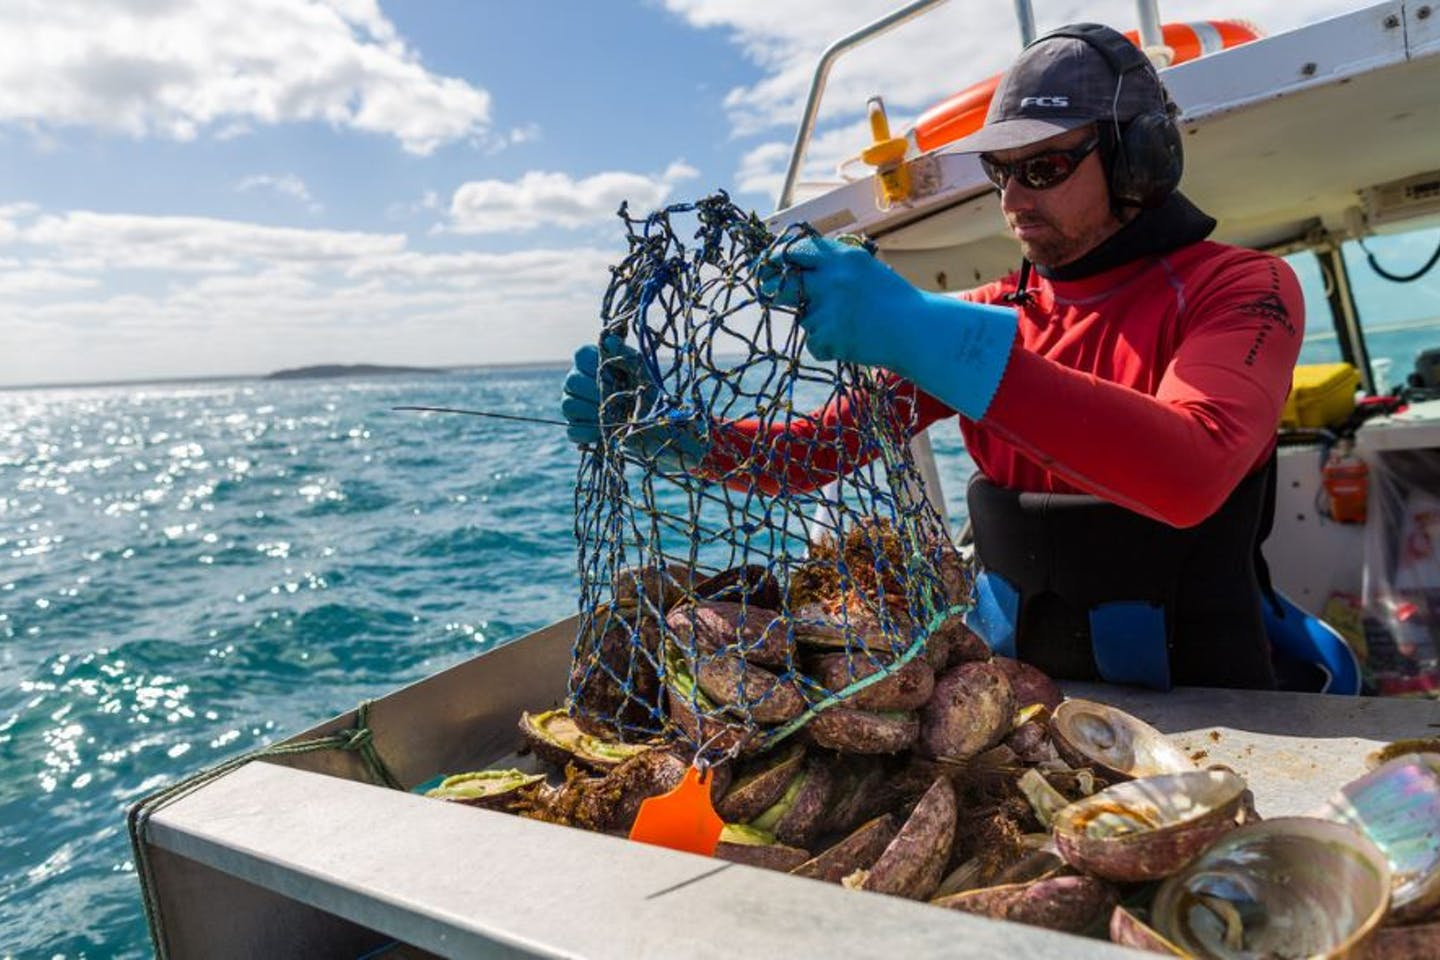 Australian fisheries seeking sustainability certification largely driven by social responsibility